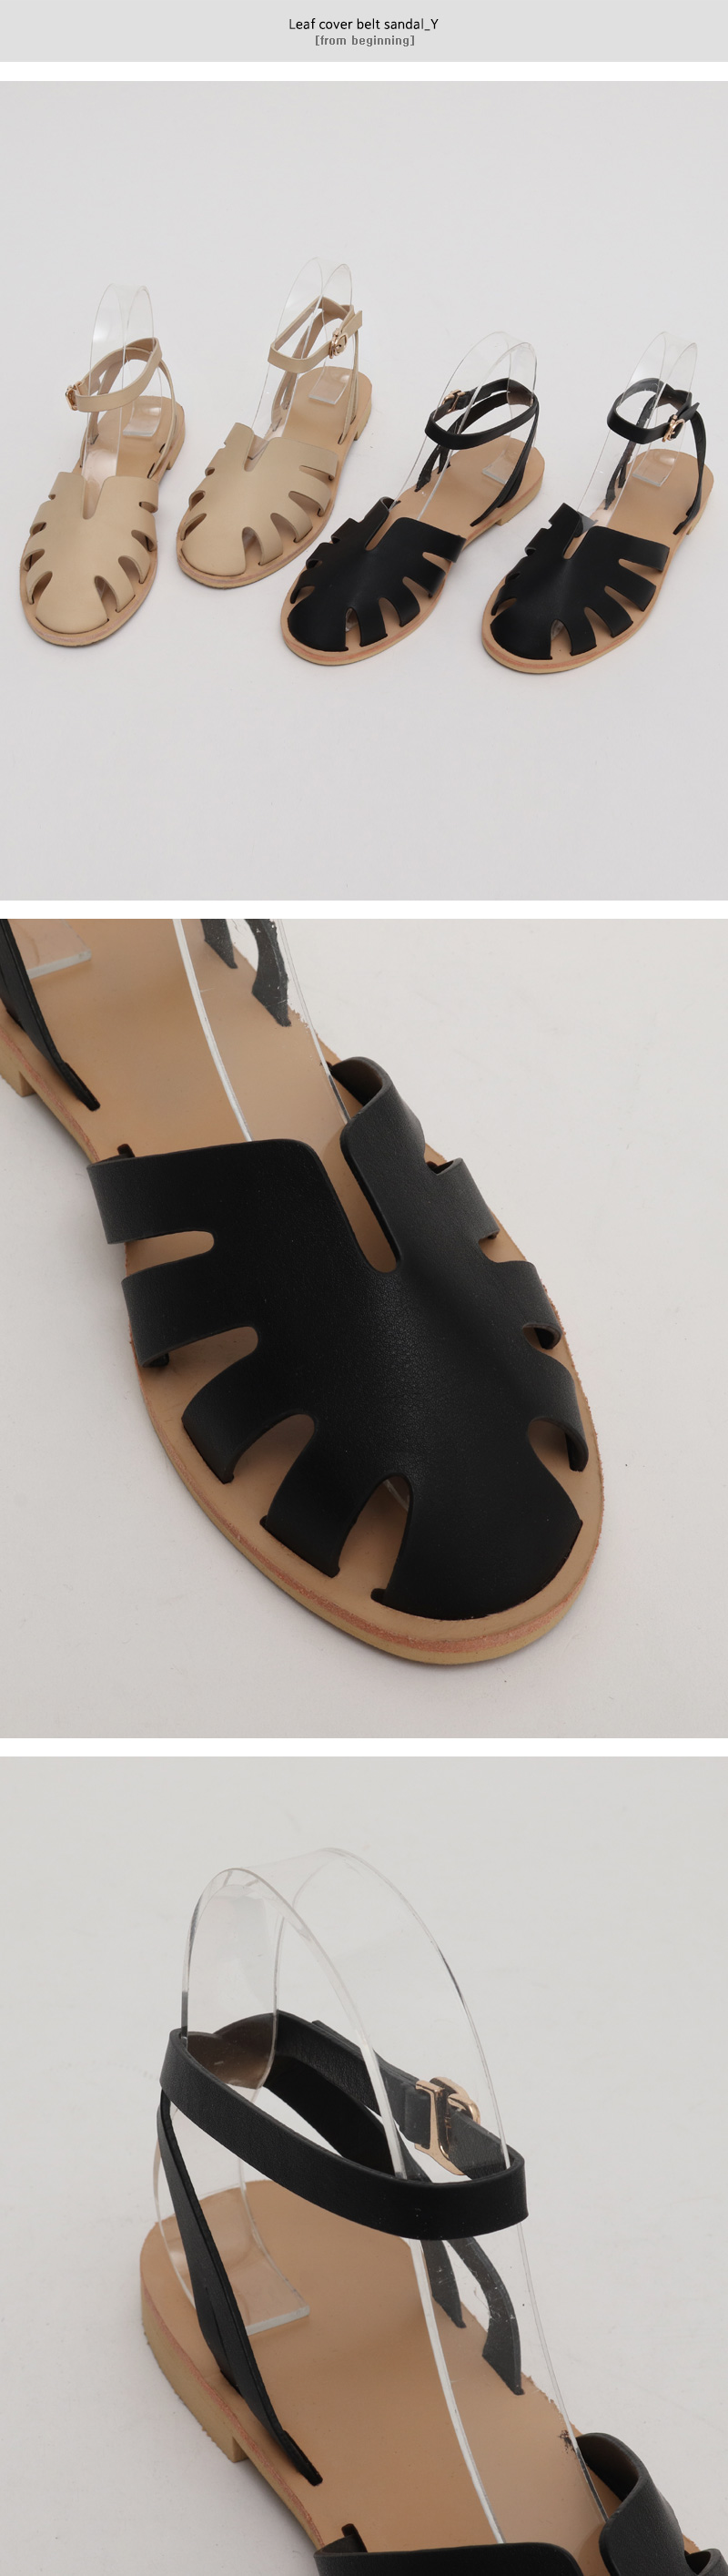 Leaf cover belt sandal_Y